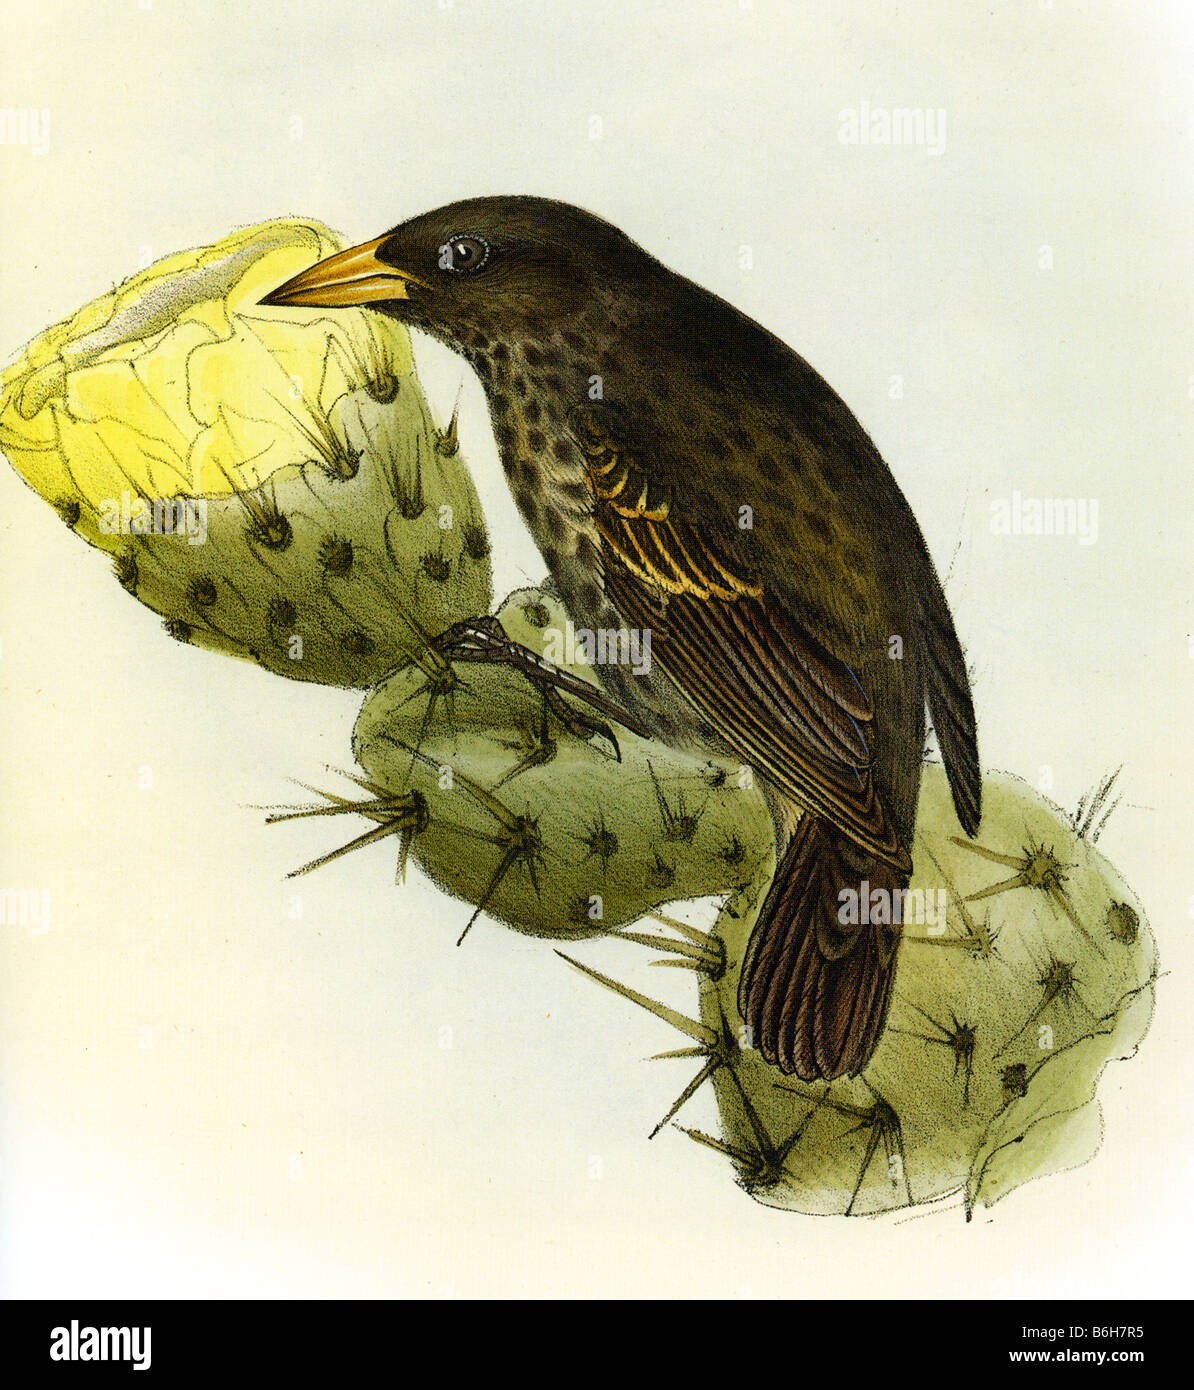 THE ZOOLOGY OF THE VOYAGE OF THE HMS BEAGLE illustration of a Galapagos Finch by Elizabeth Gould - Stock Image